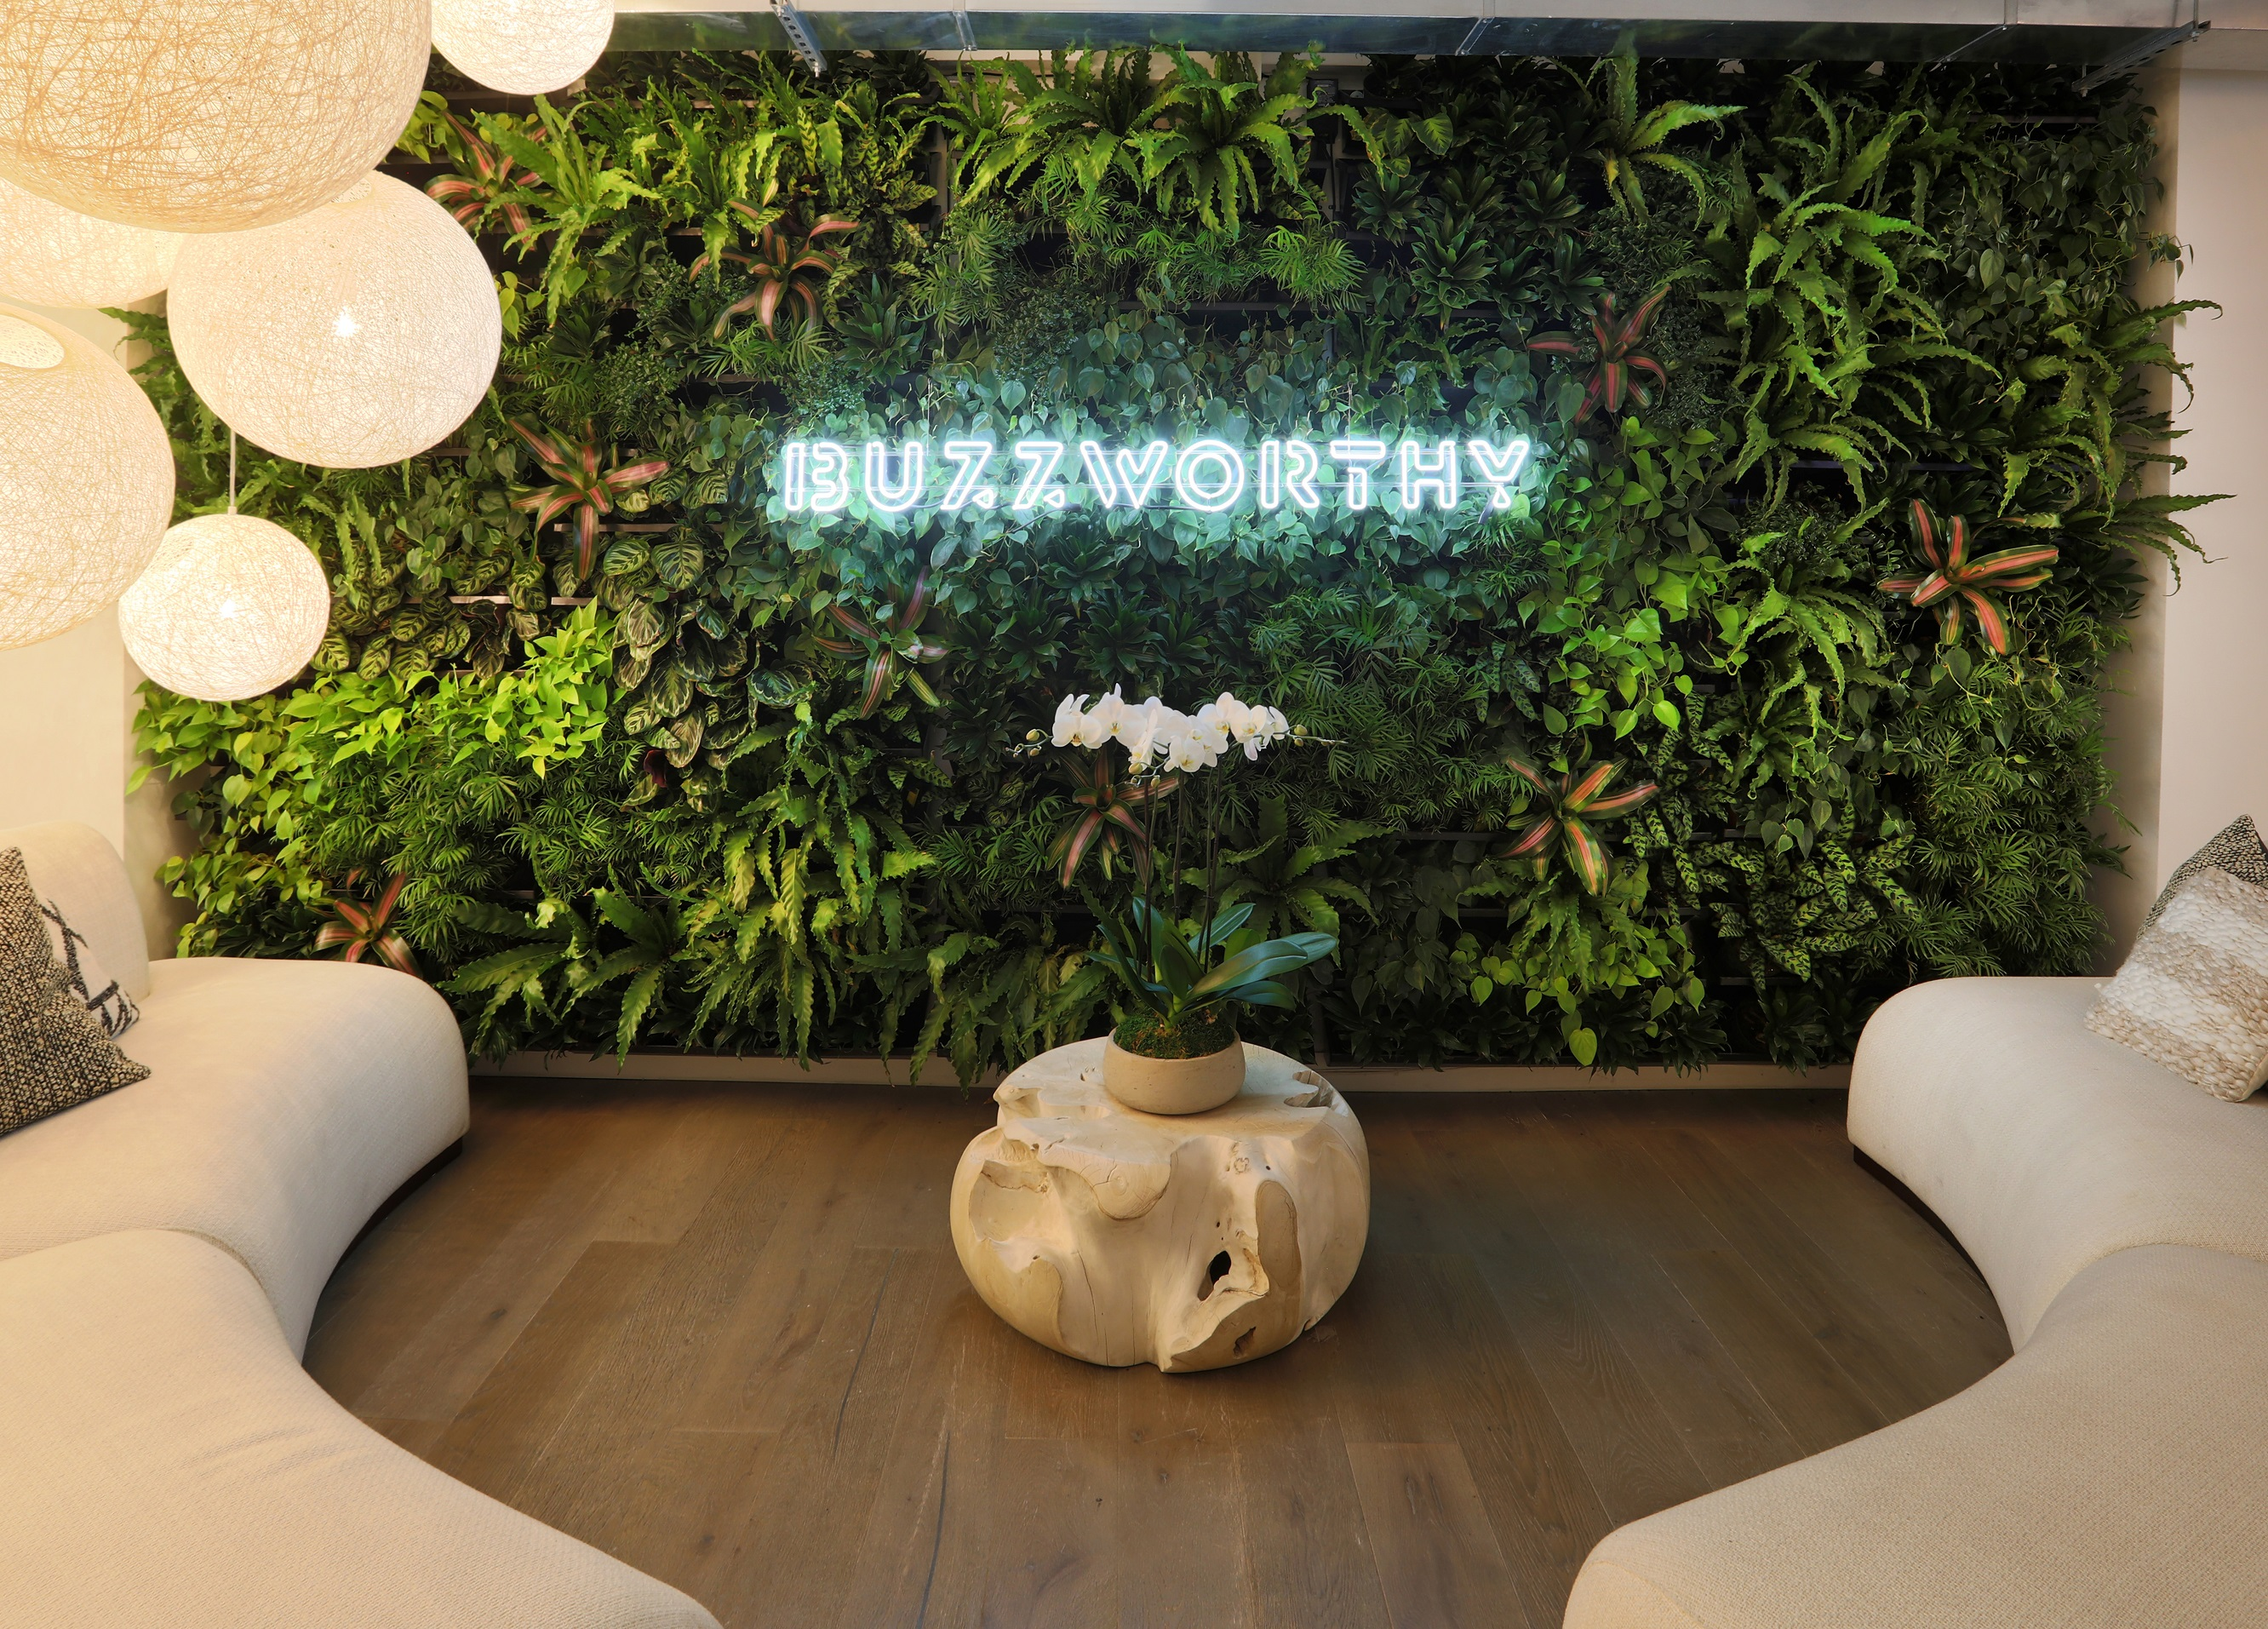 Interior landscaping office Modern Corporate Living Wall Projects Metro Tropical Plant Woburn Ma Indoor Landscaping Ny Nj Ct John Mini Distinctive Landscapes